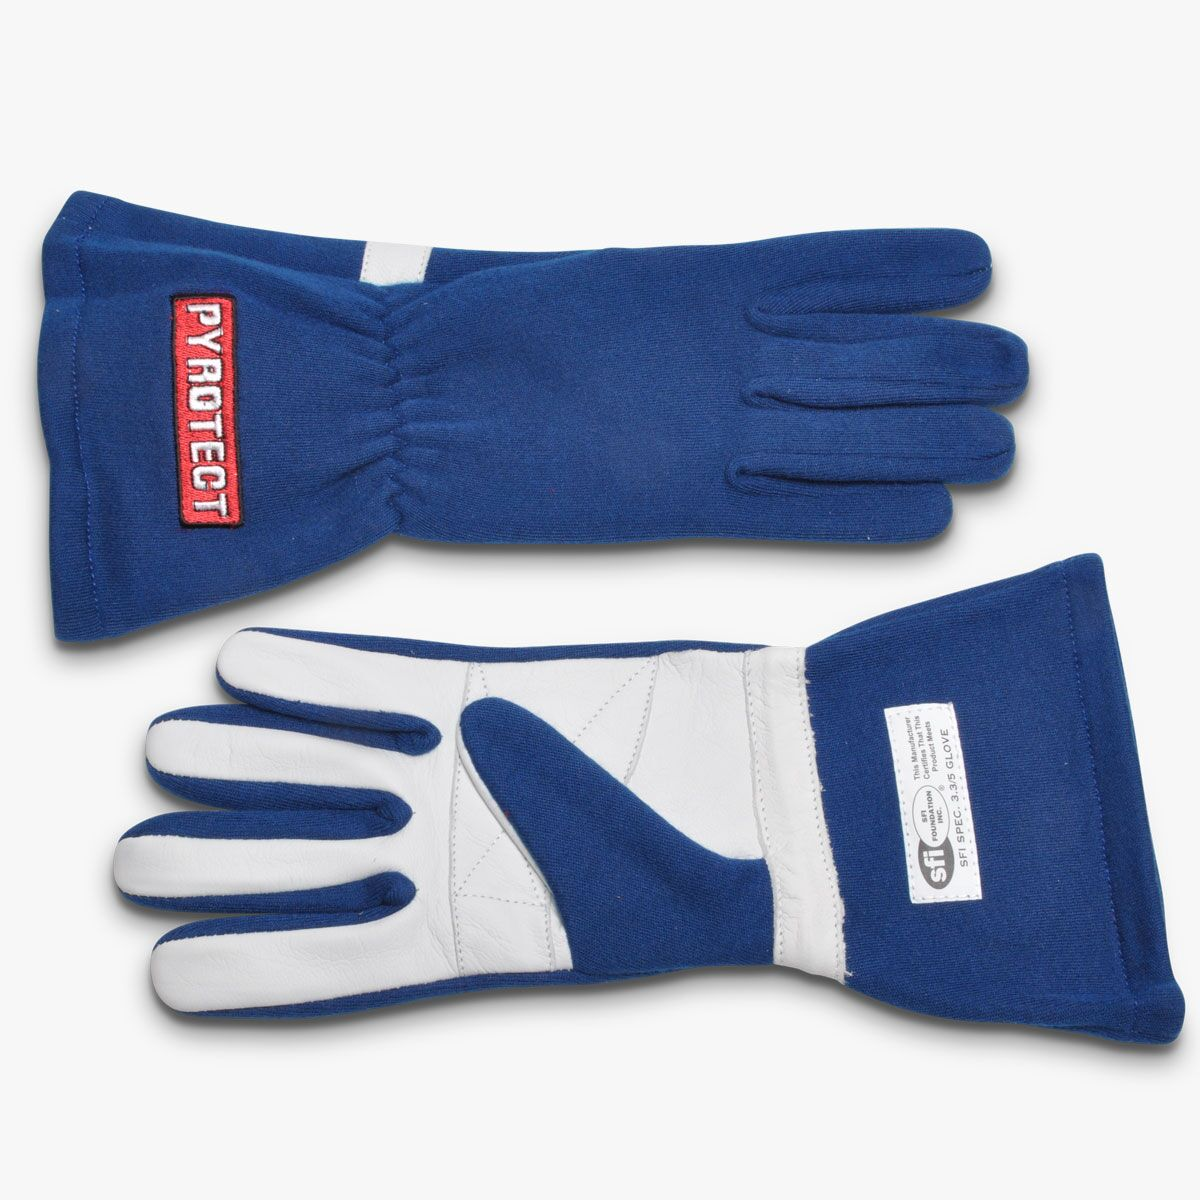 Pyrotect Sport Series SFI-5 Gloves